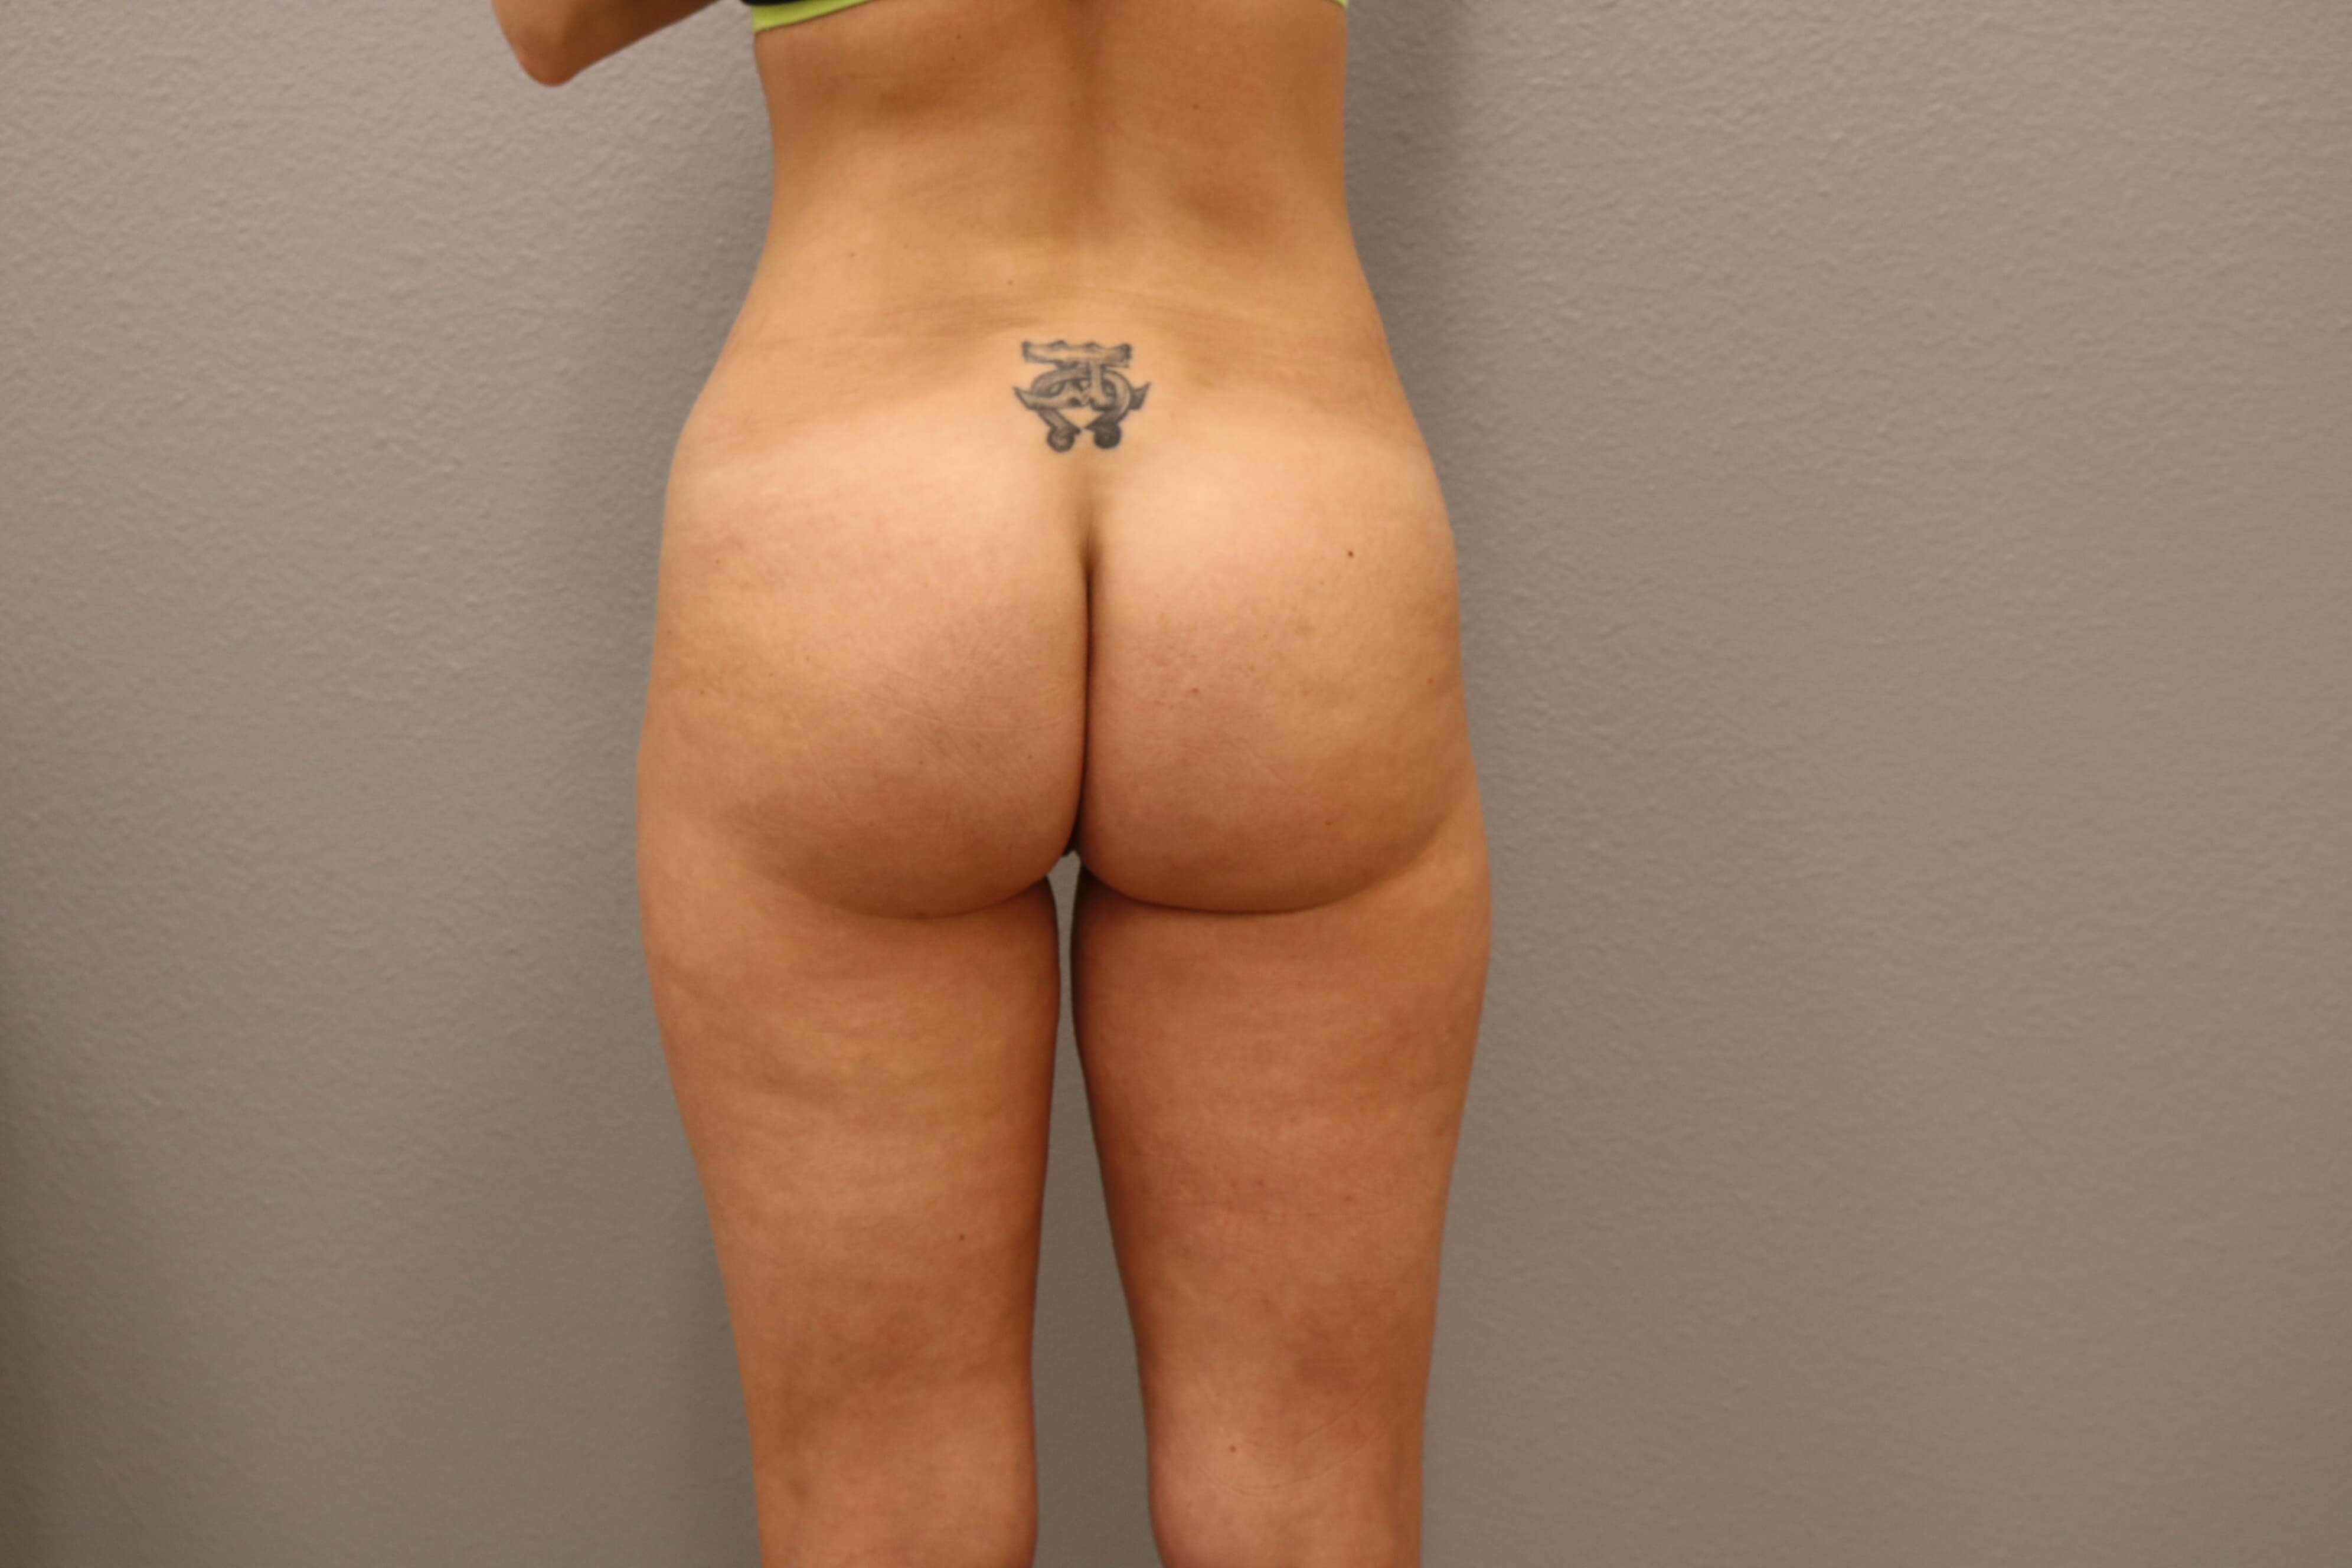 Butt Augmentation Before